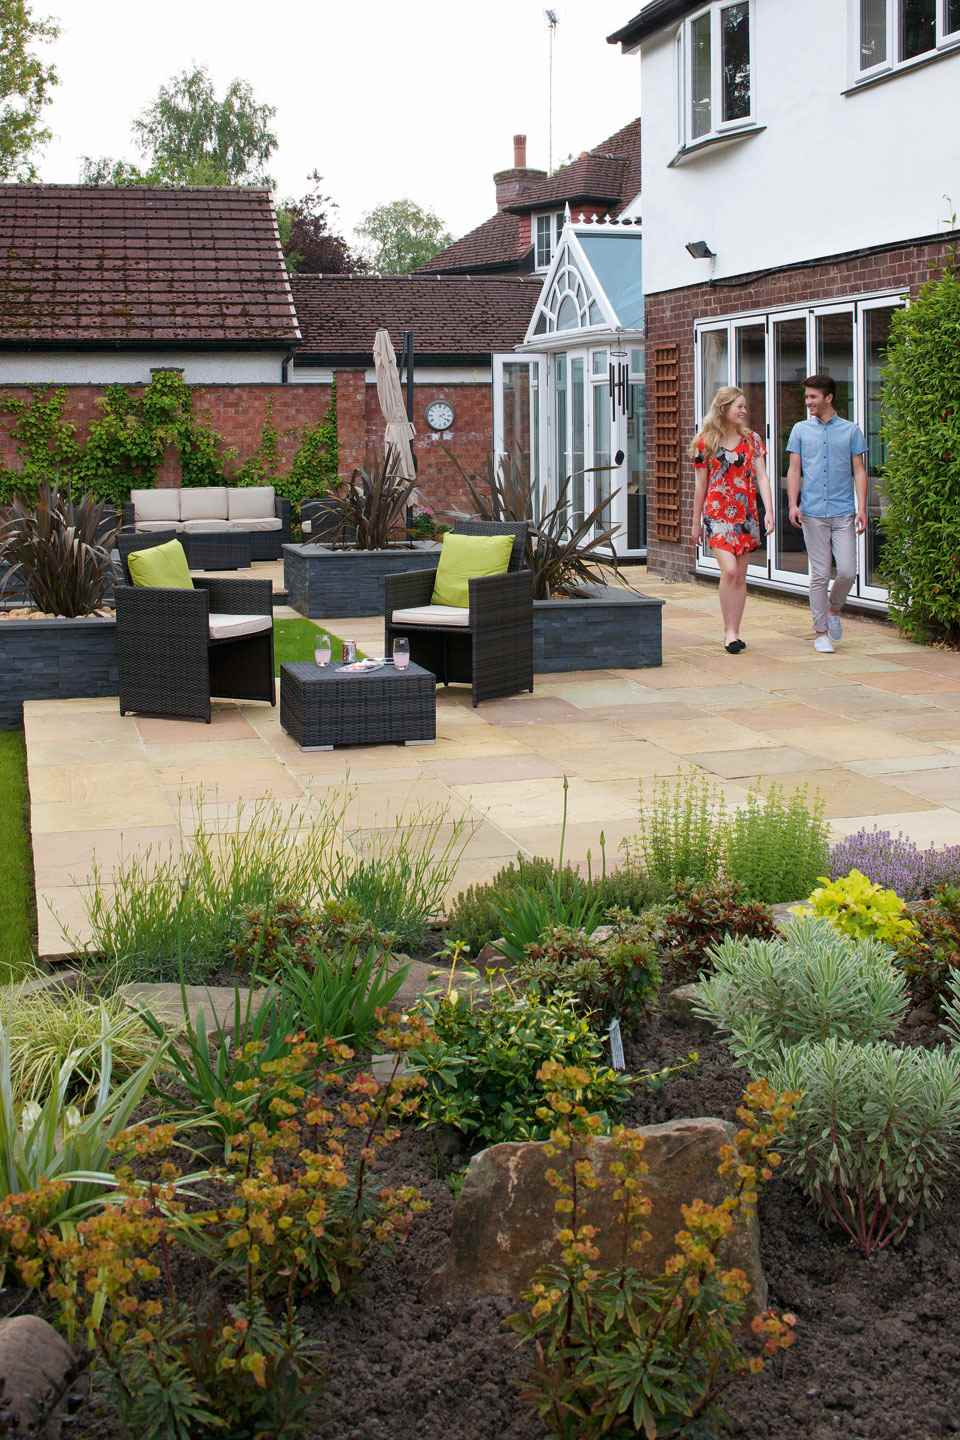 Indian Stone Paving | Indian Sandstone Paving Slabs & Patio